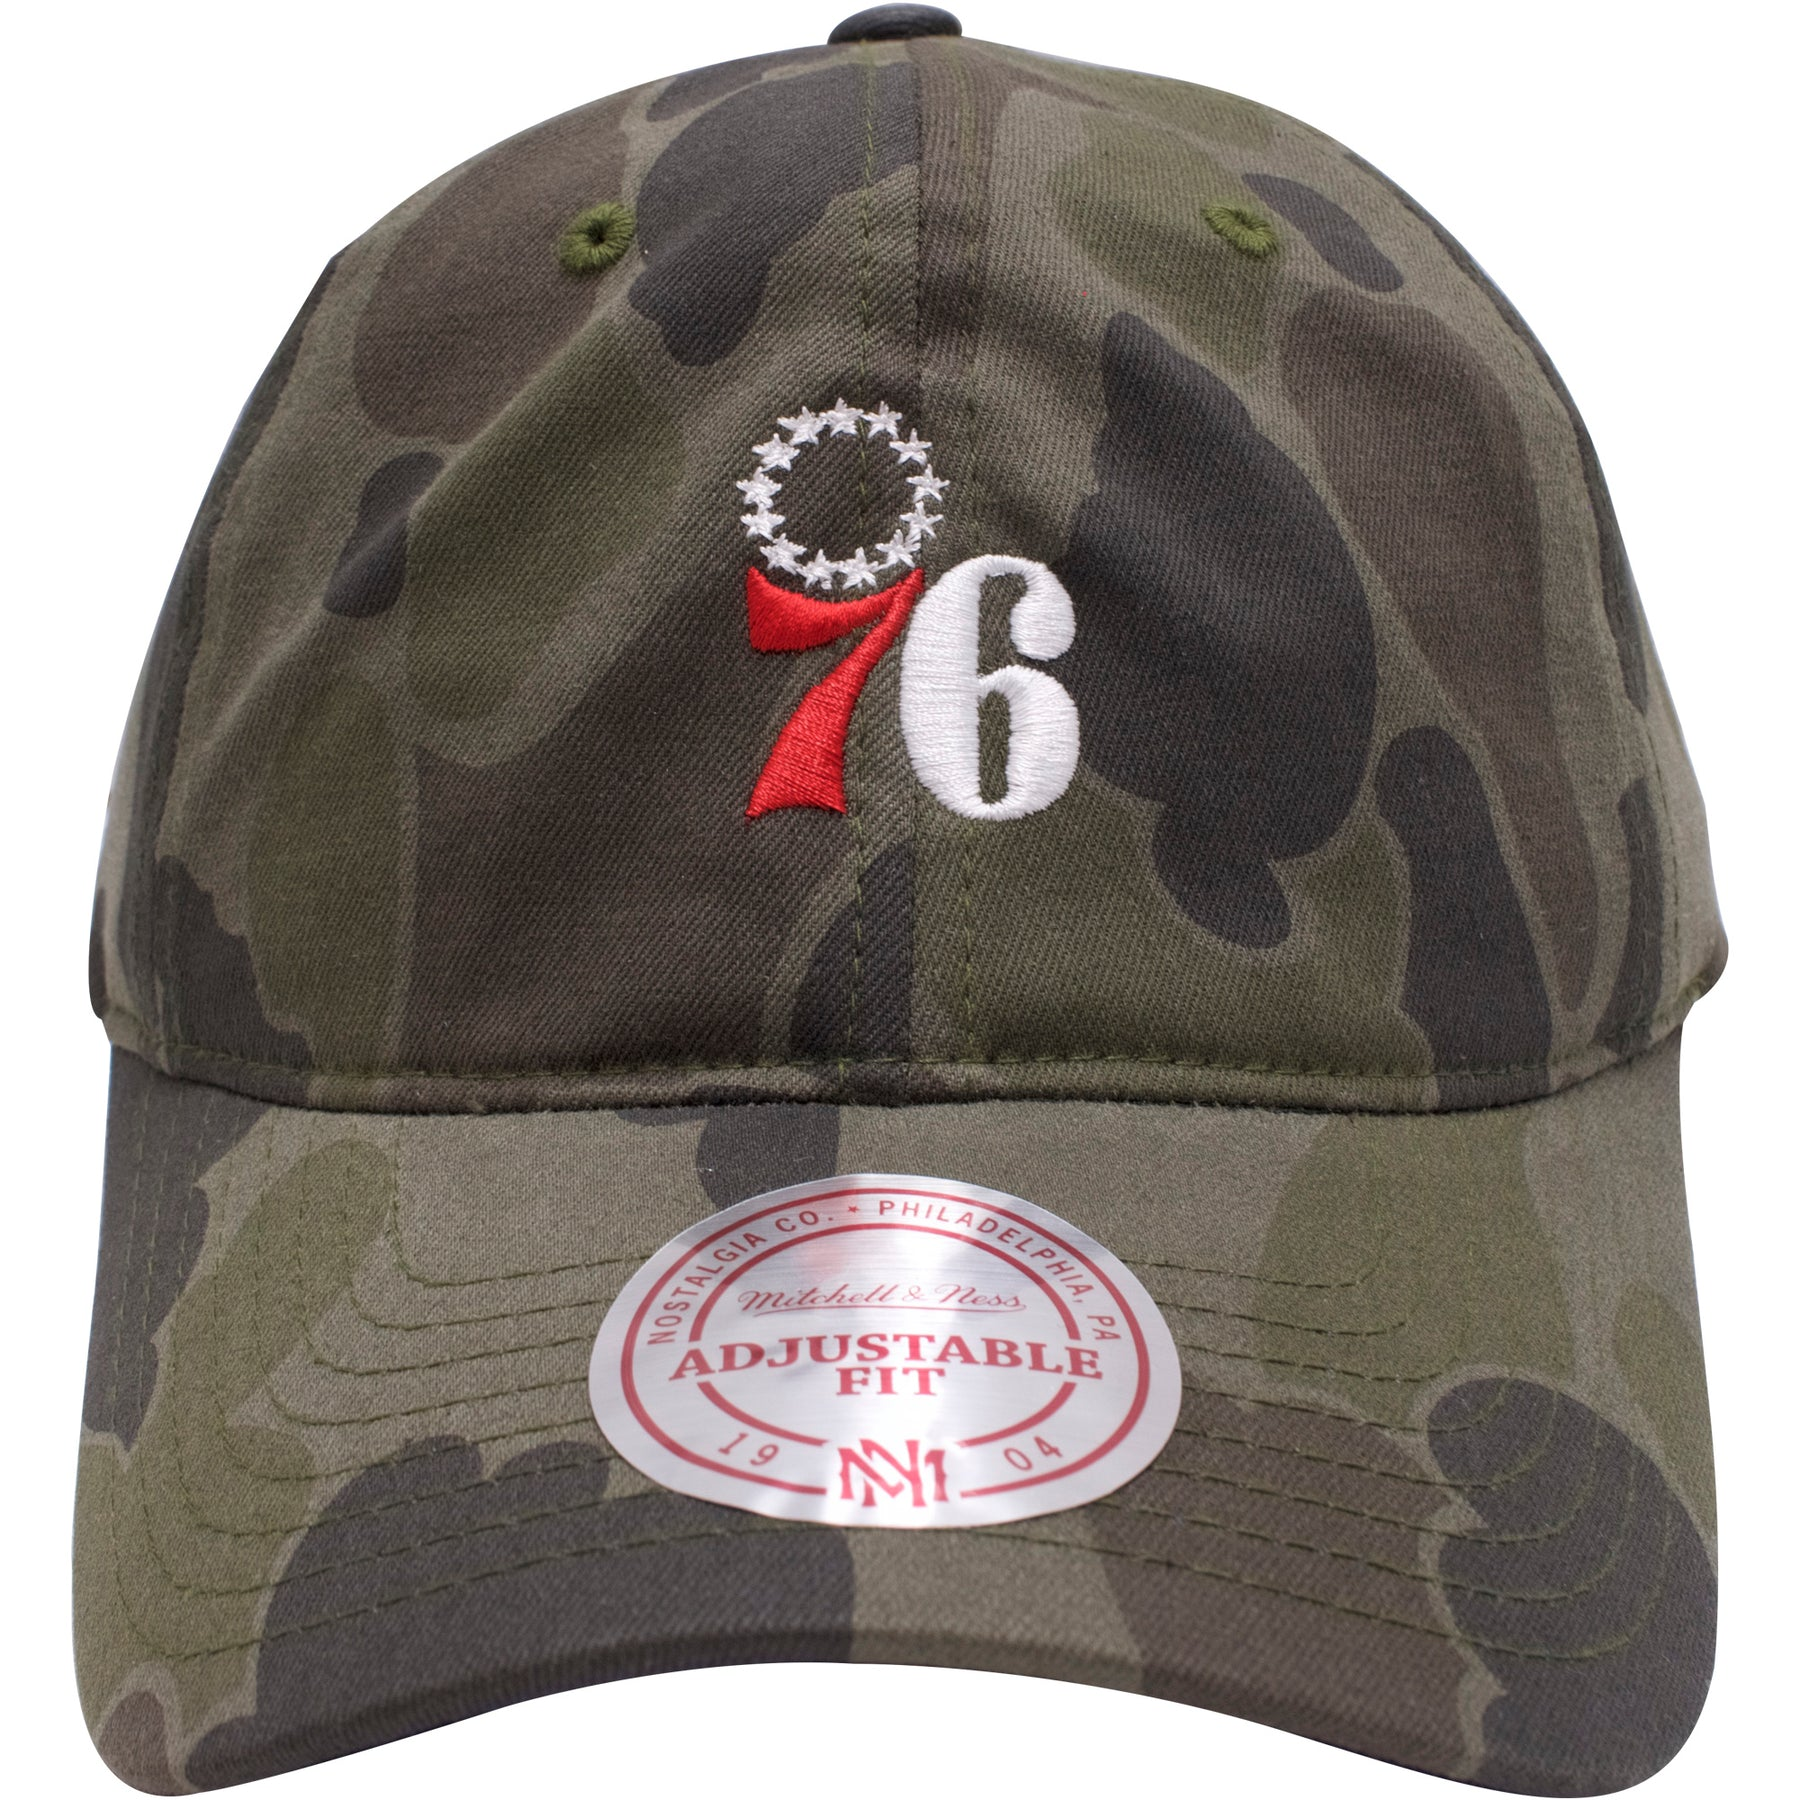 2ade81759d8 the philadelphia 76ers woodland camouflage dad hat has a soft crown and a  bent brim